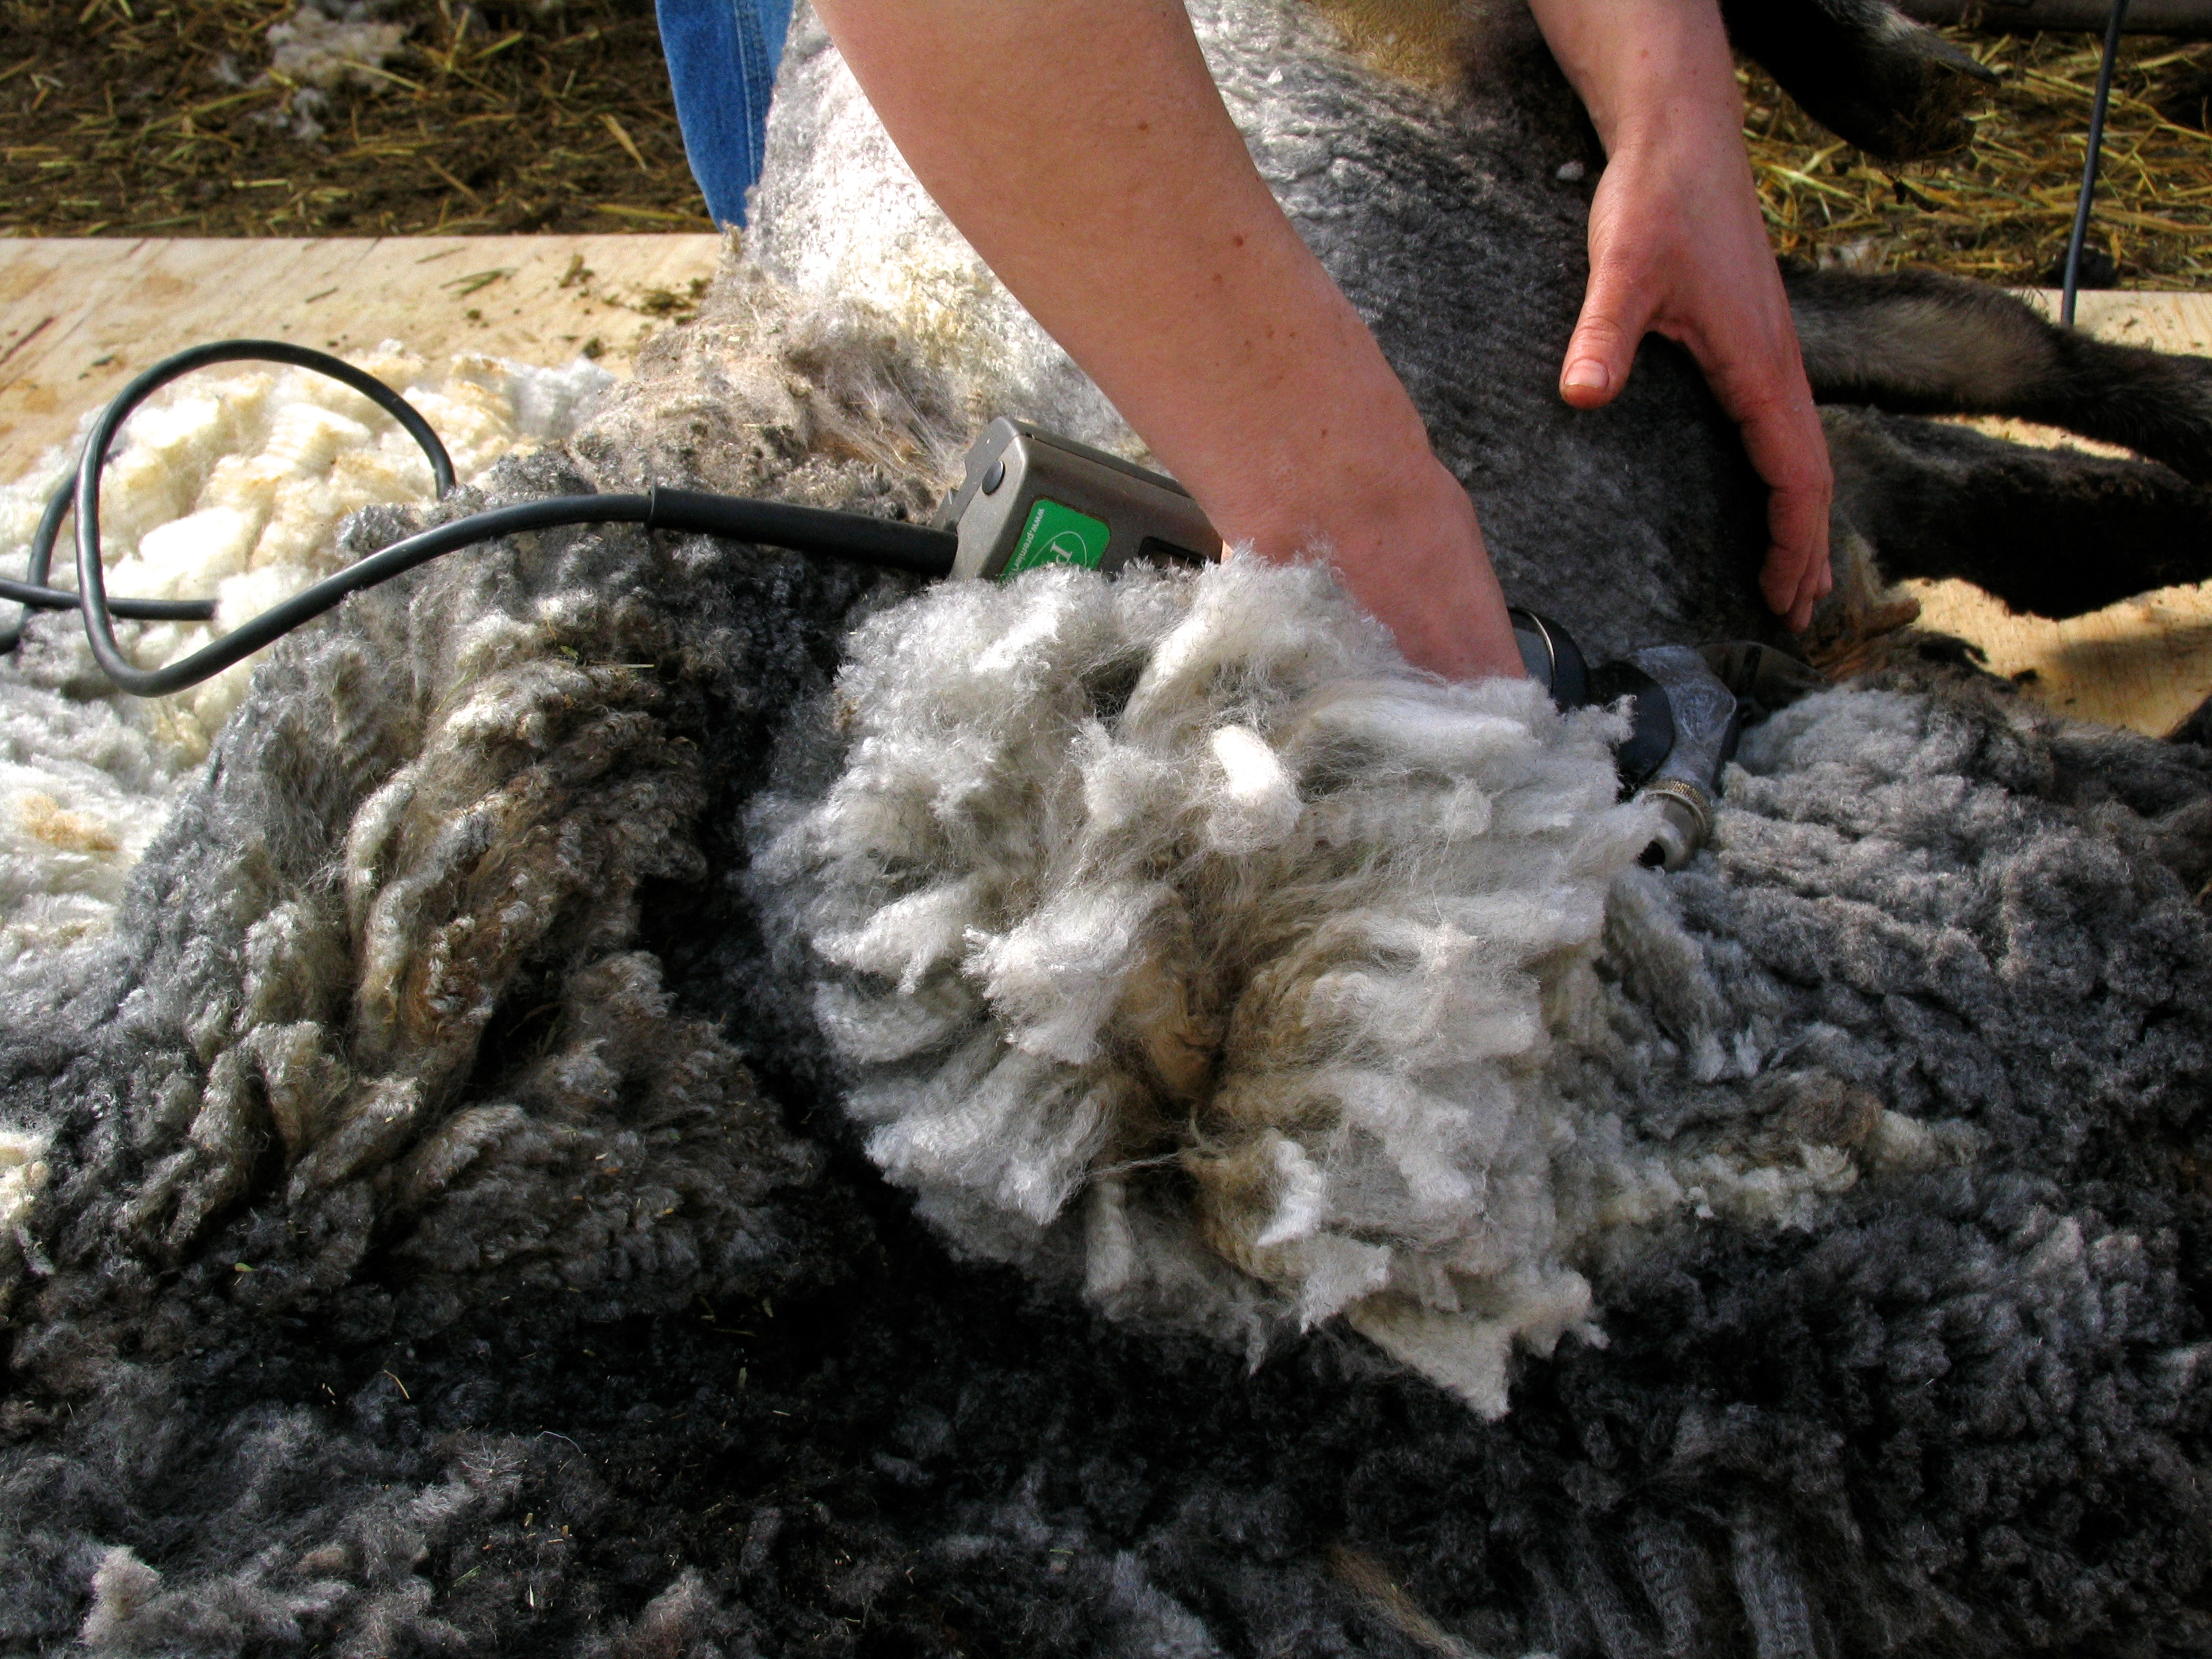 hands of the shearer are clipping black and white fleece